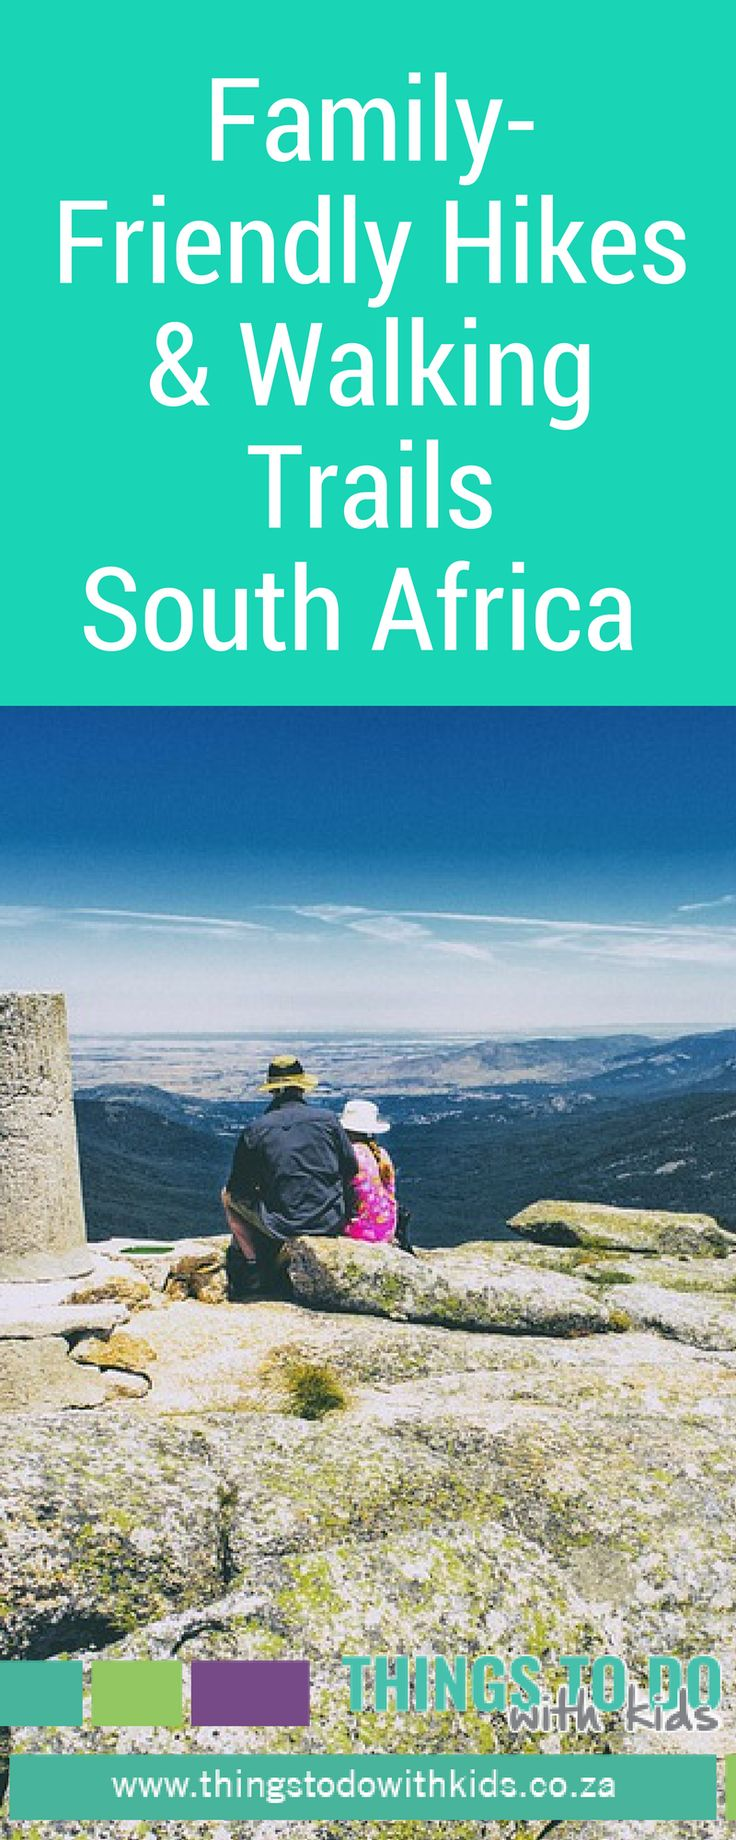 Hiking Trails South Africa | Child-friendly hiking trails South Africa | Family-friendly hiking trails South Africa | Hiking | South Africa | Family hobby | Things to do with Kids | Activities & Excursions